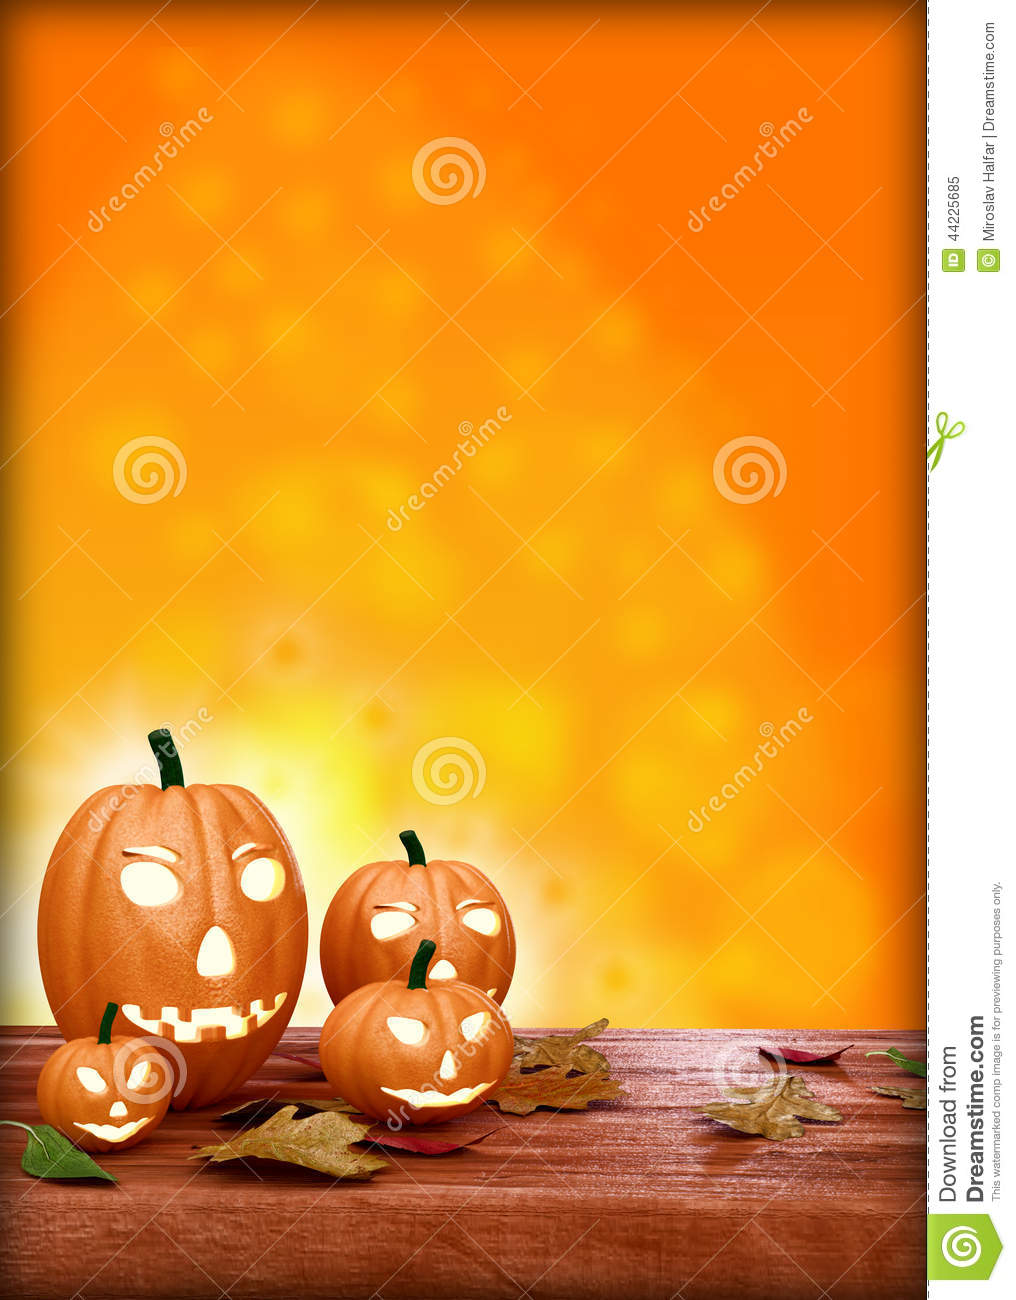 halloween flyer design template with pumpkin - Free Halloween Flyer Templates